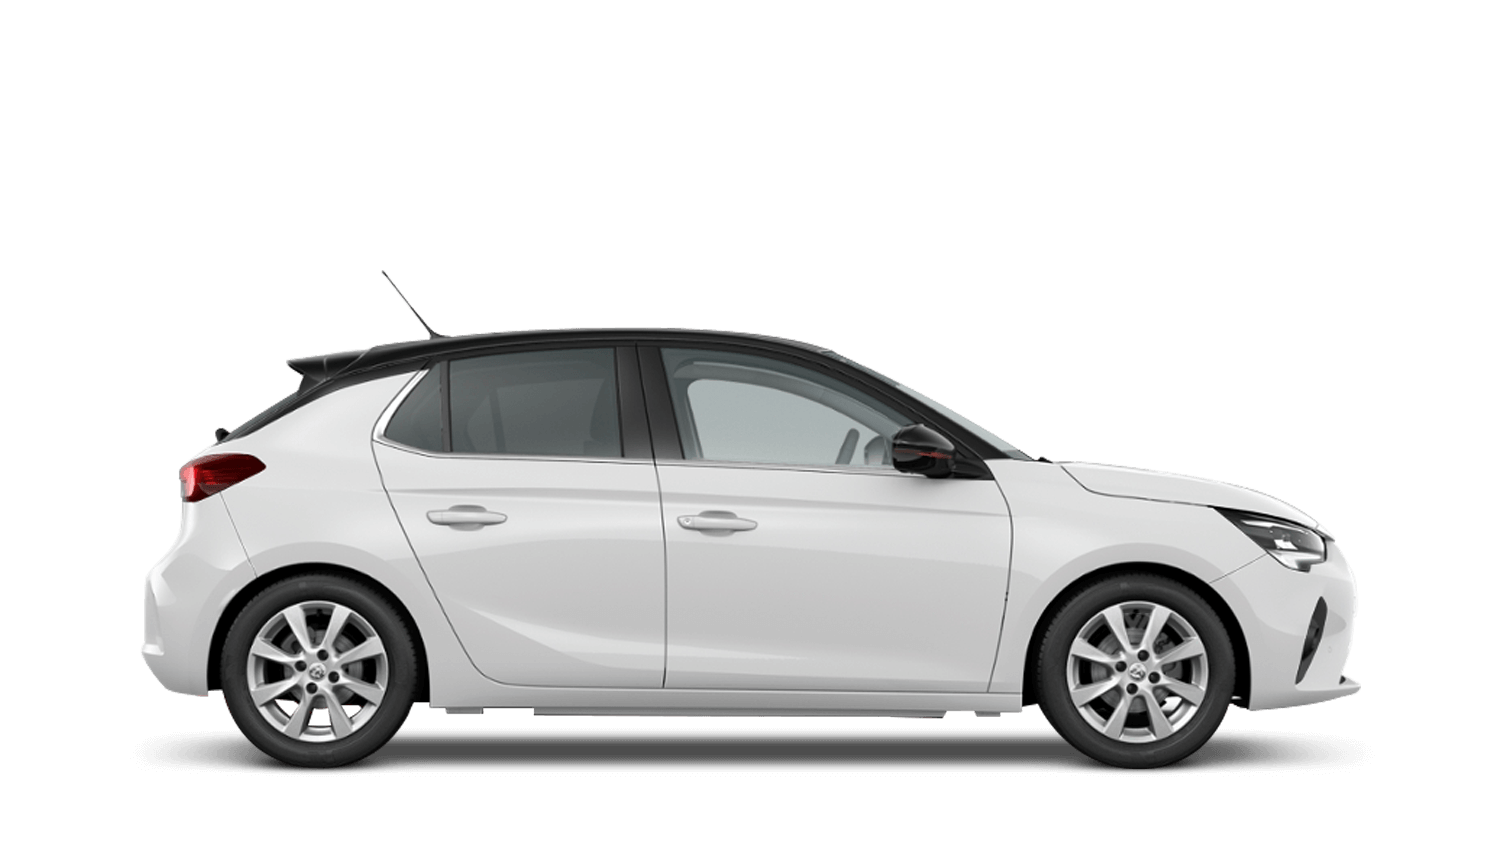 Extra £500 towards a new Corsa when you take a test drive